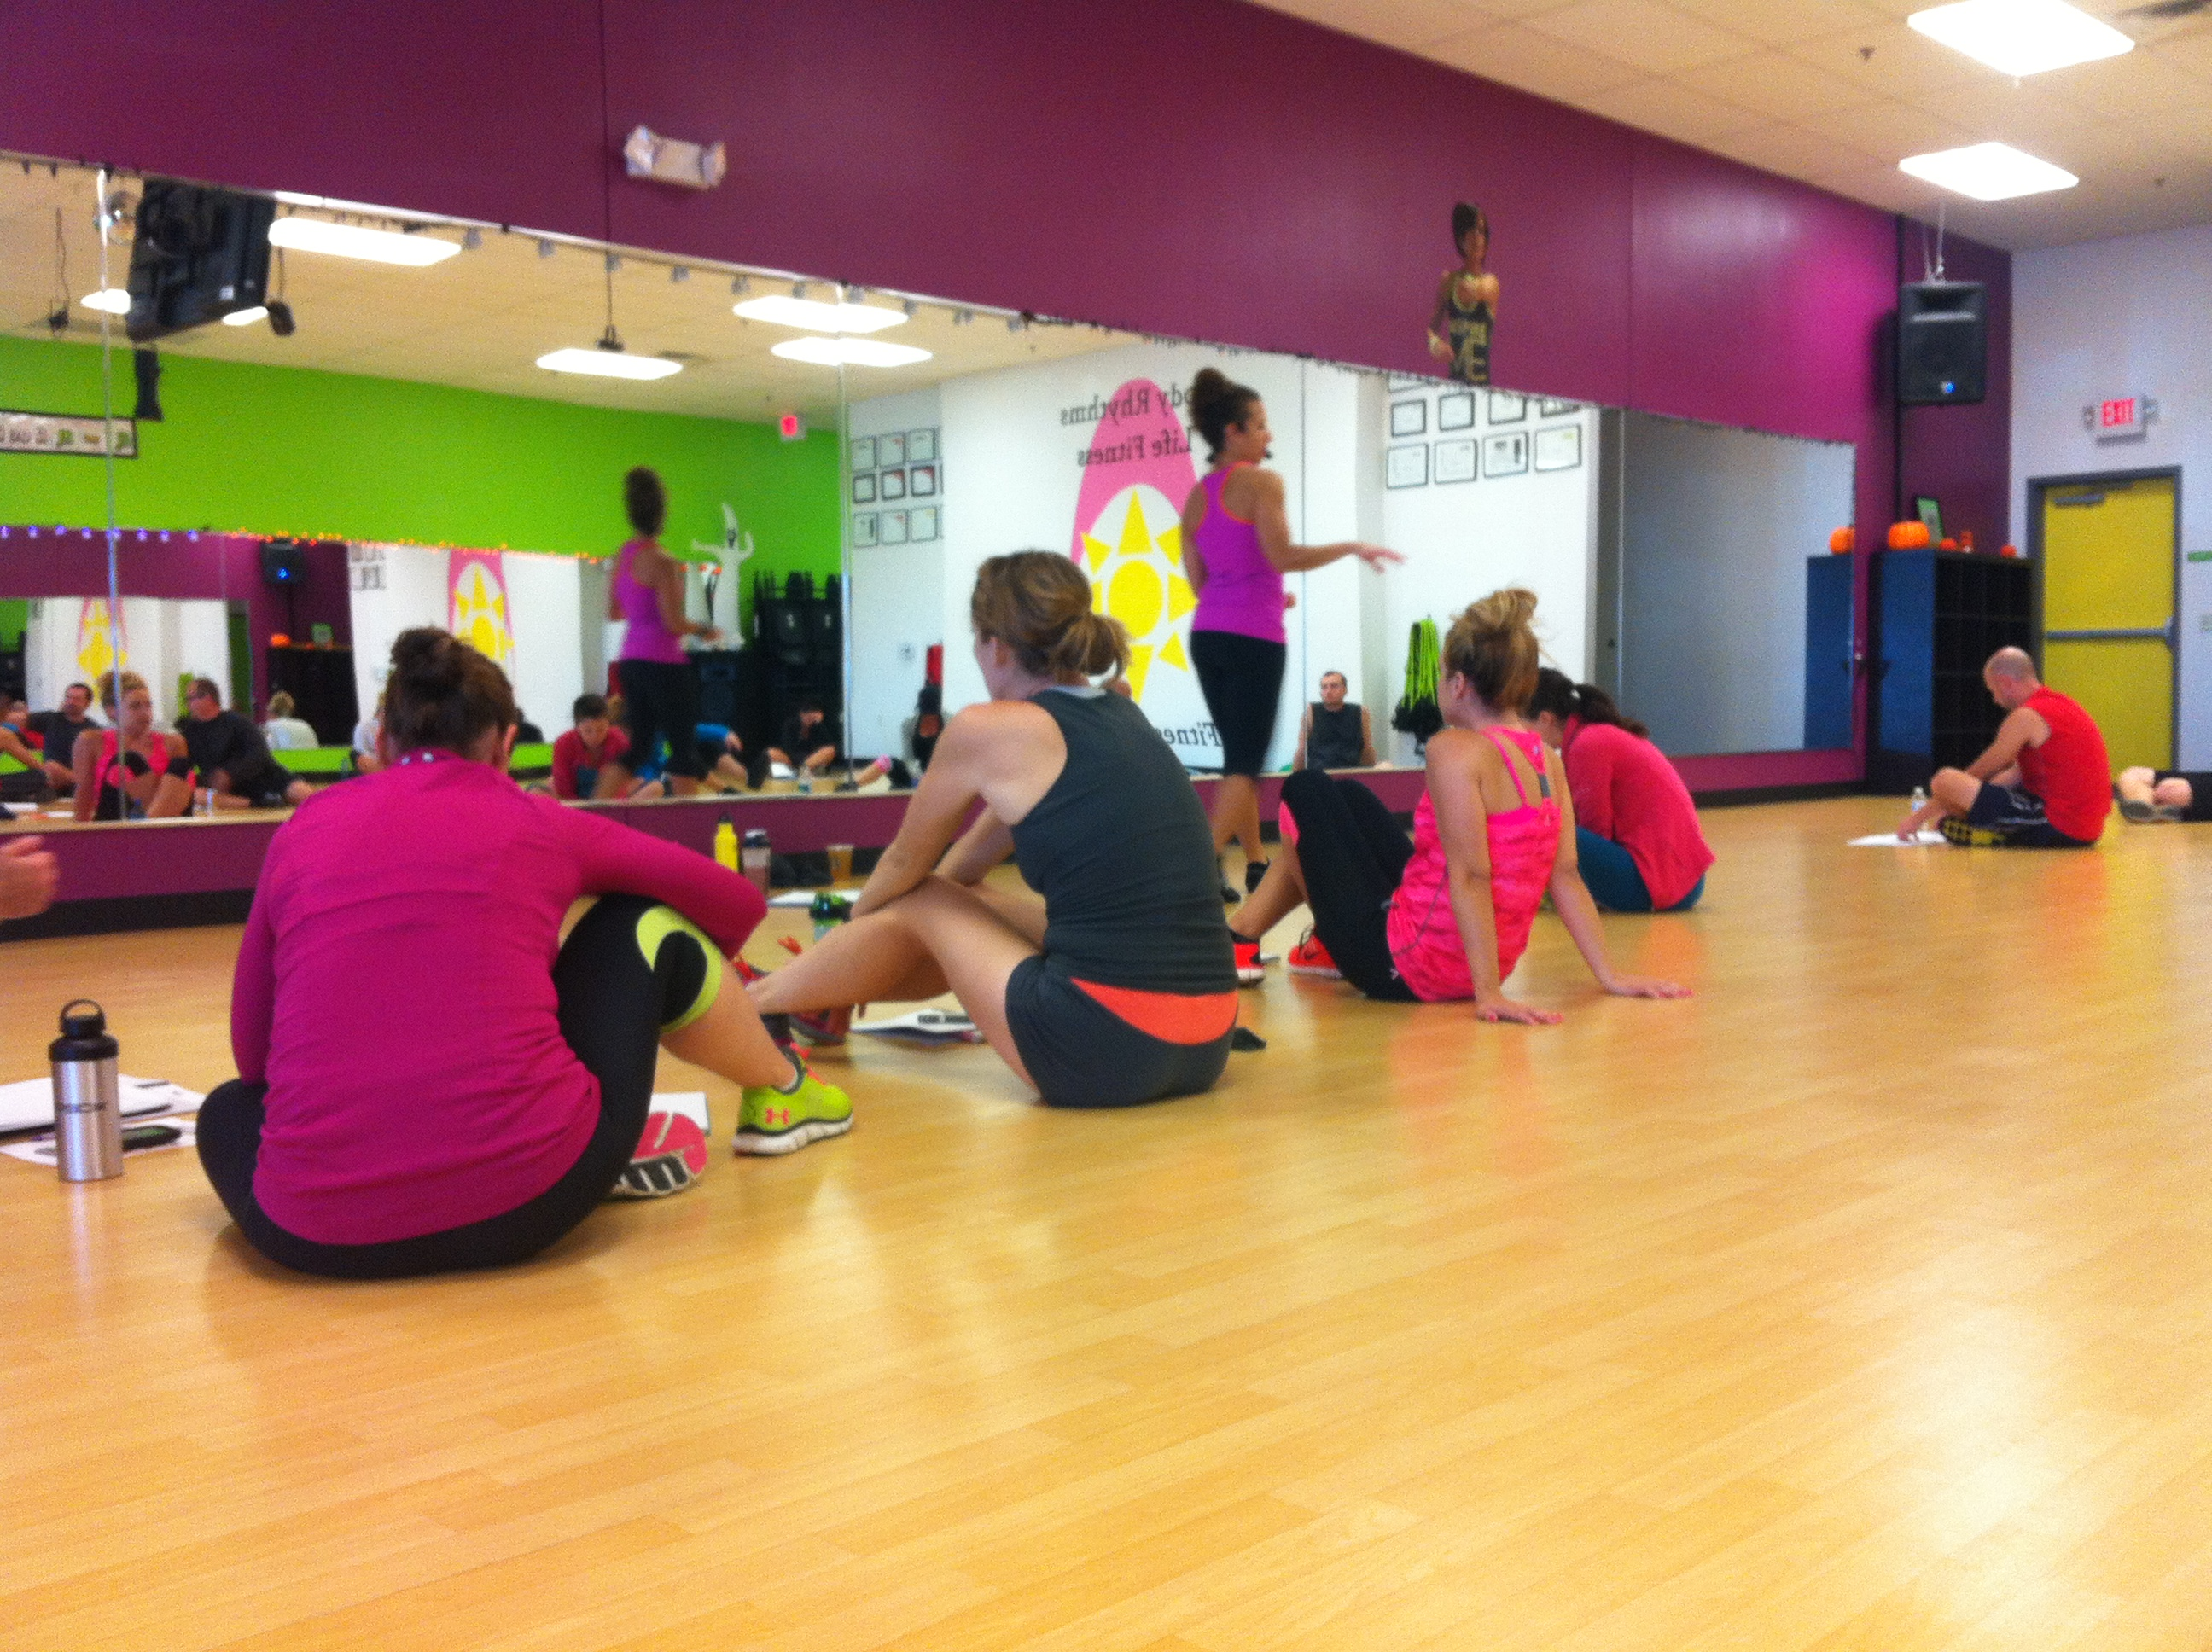 Insanity Certification Class